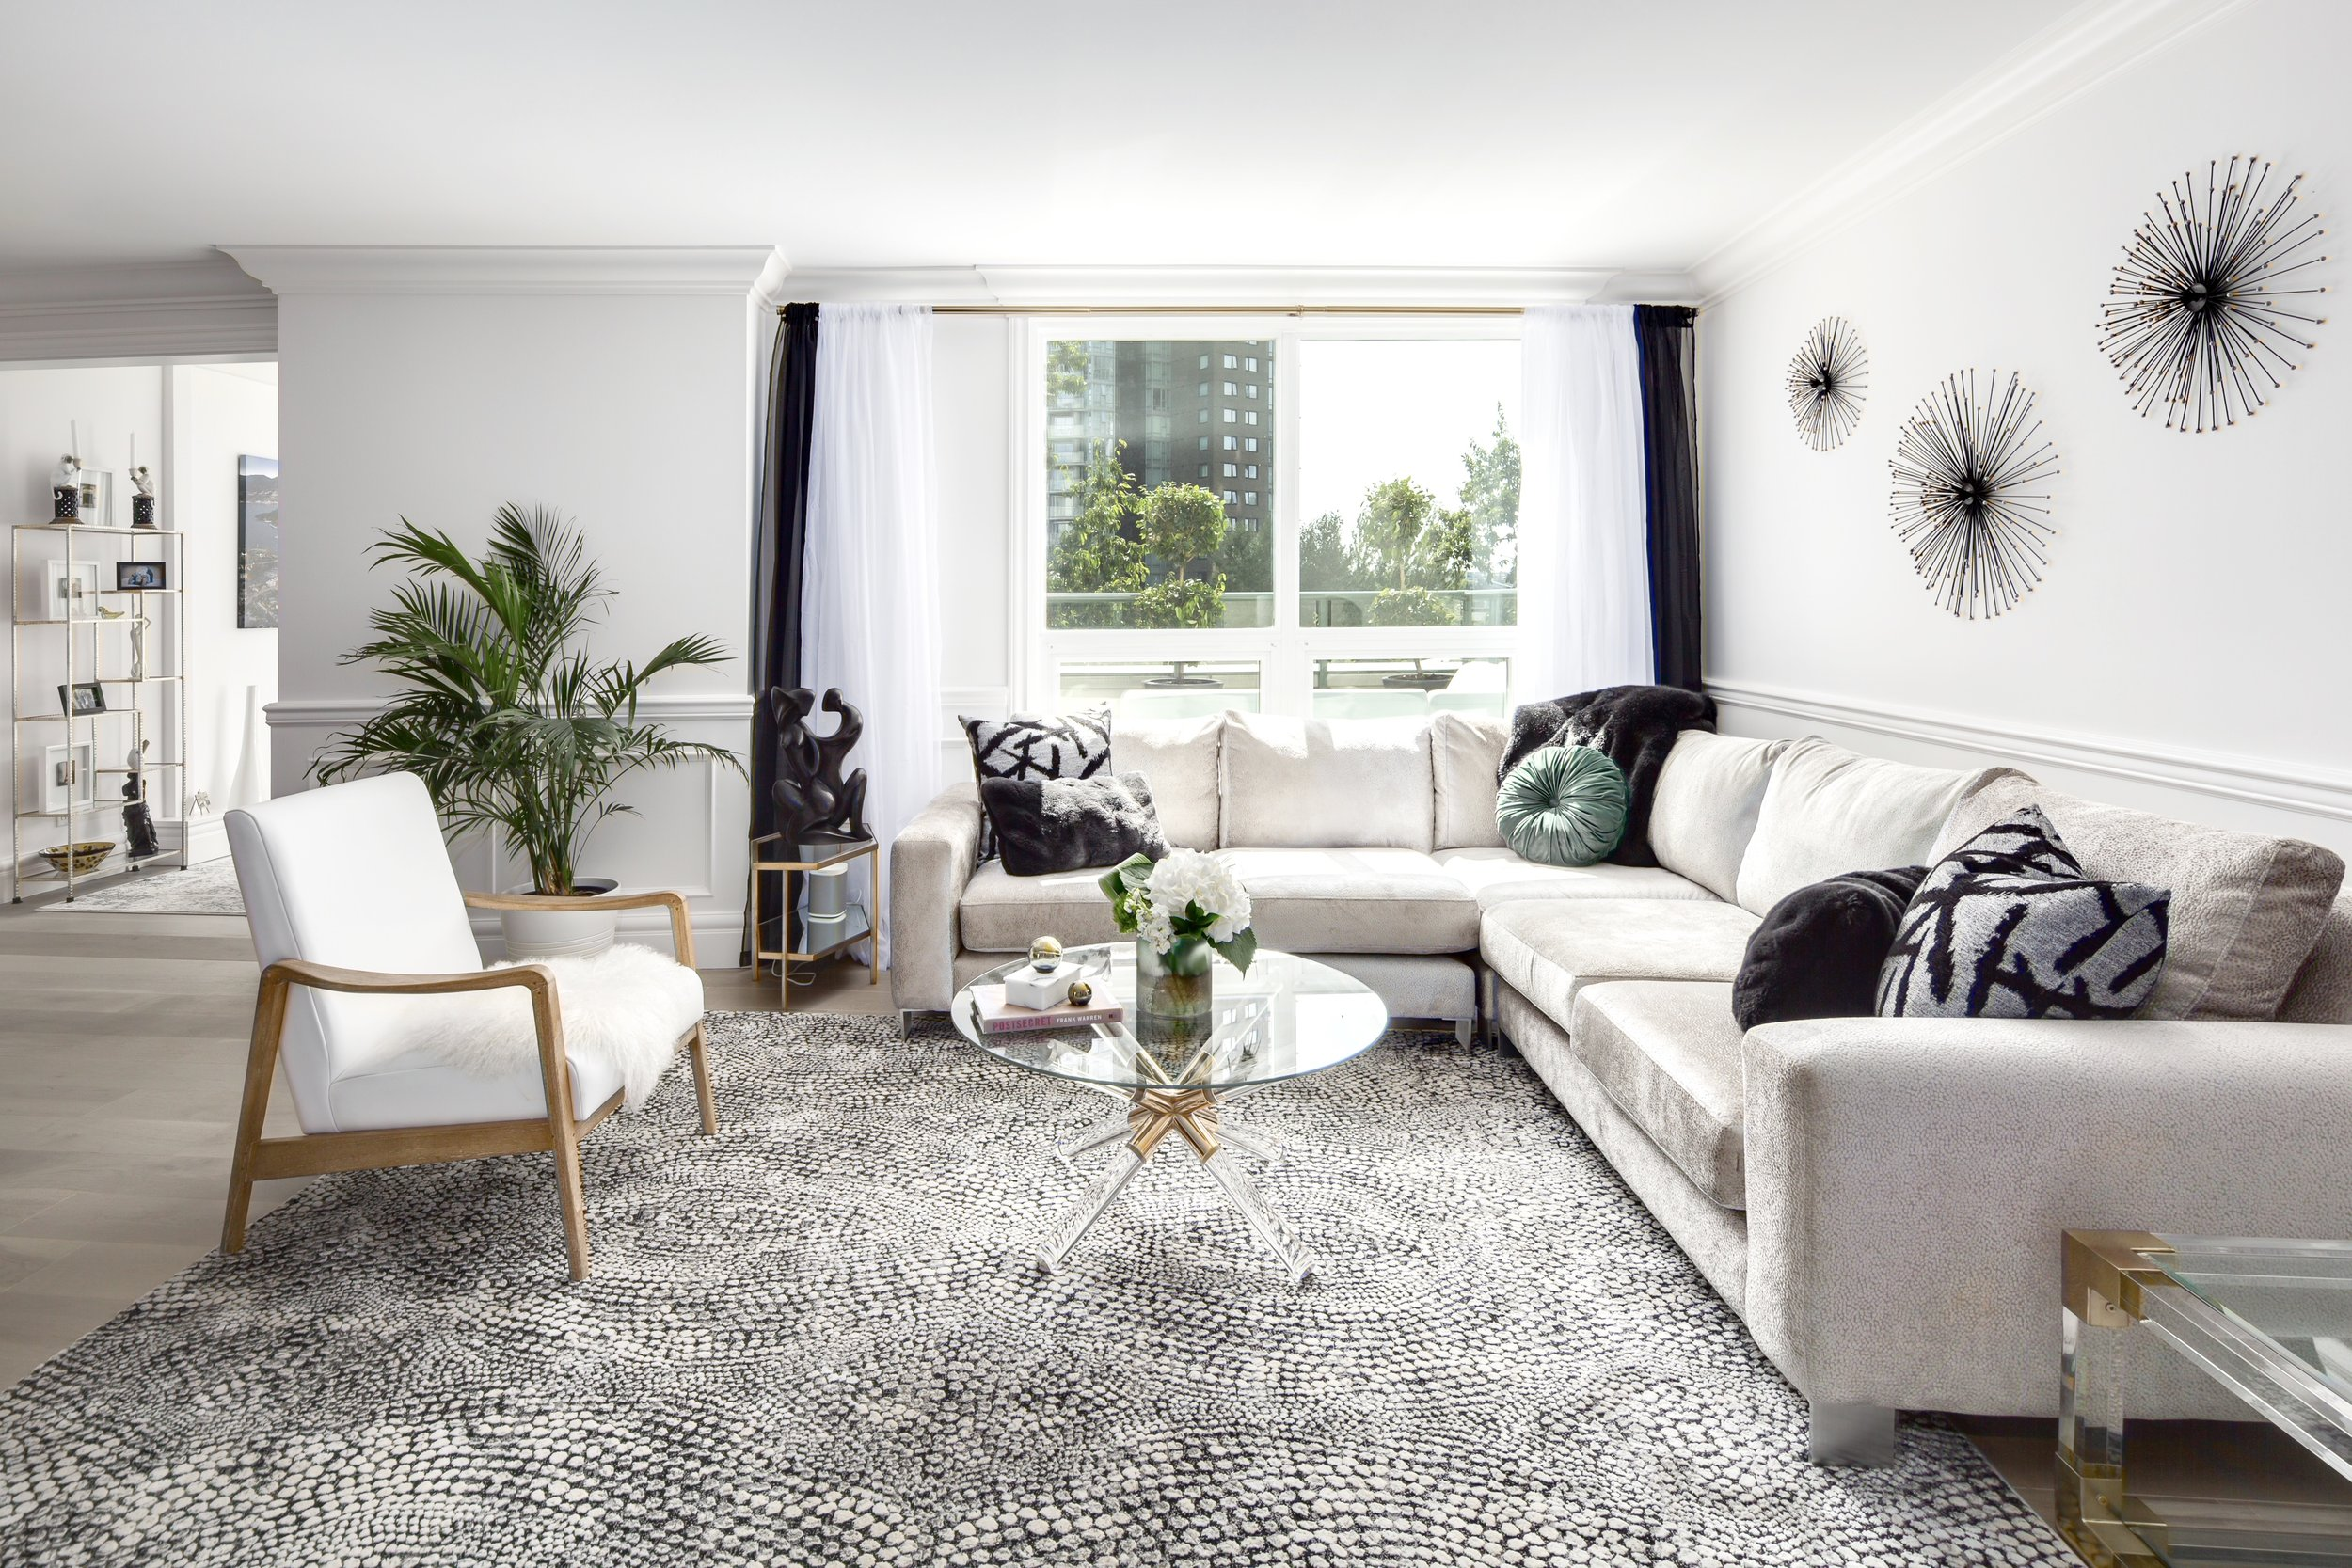 PACIFIC ST // VANCOUVER: Condo - Once dark + traditional, this fresh space pays homage to contemporary + art decor design